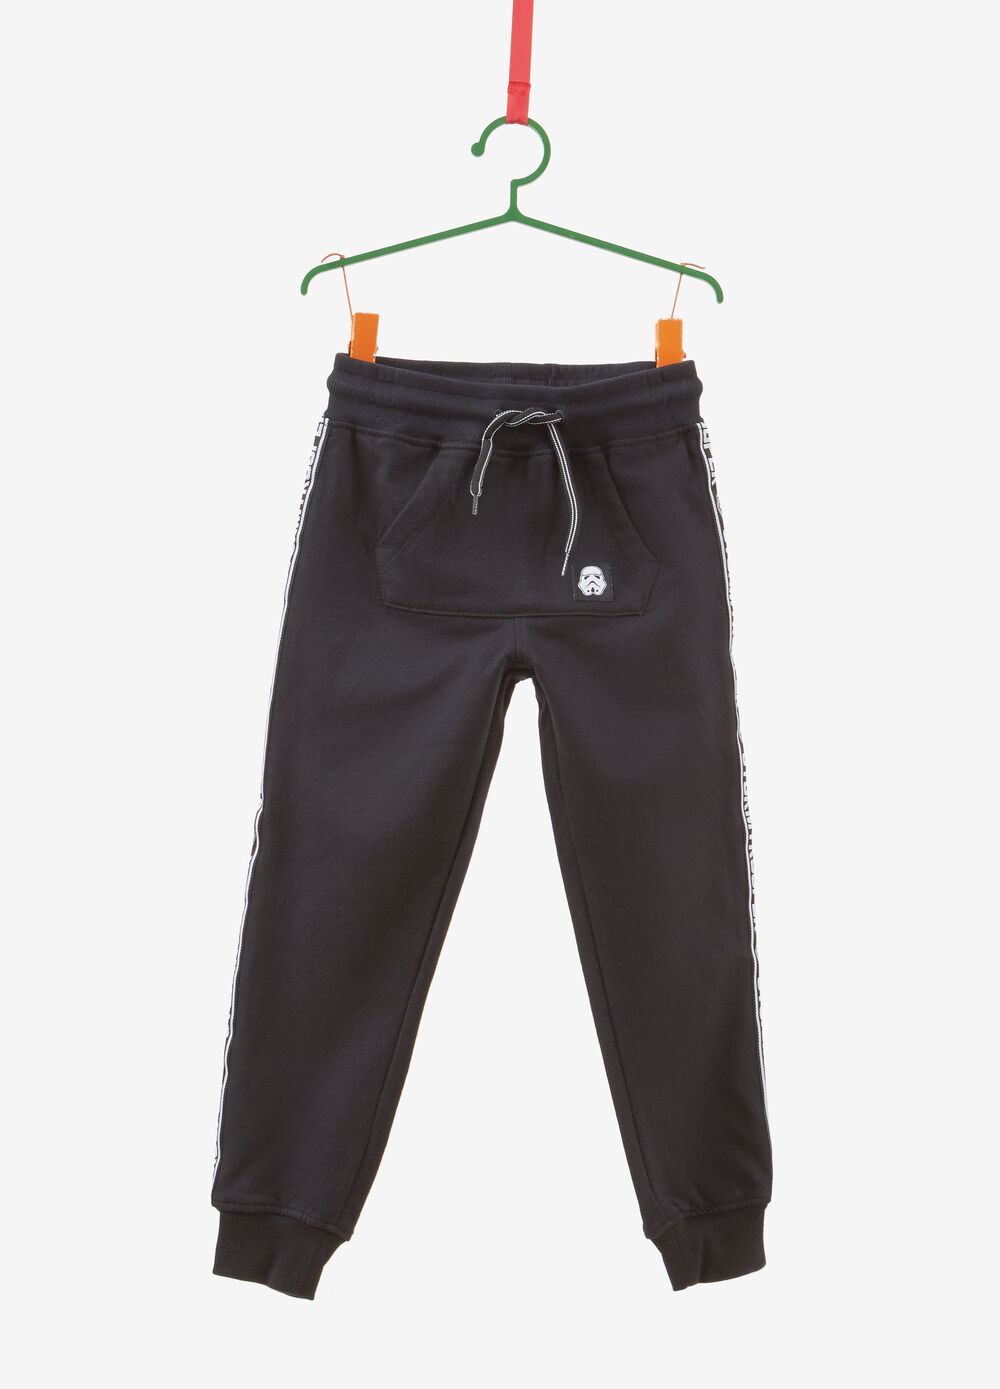 100% cotton Star Wars trousers